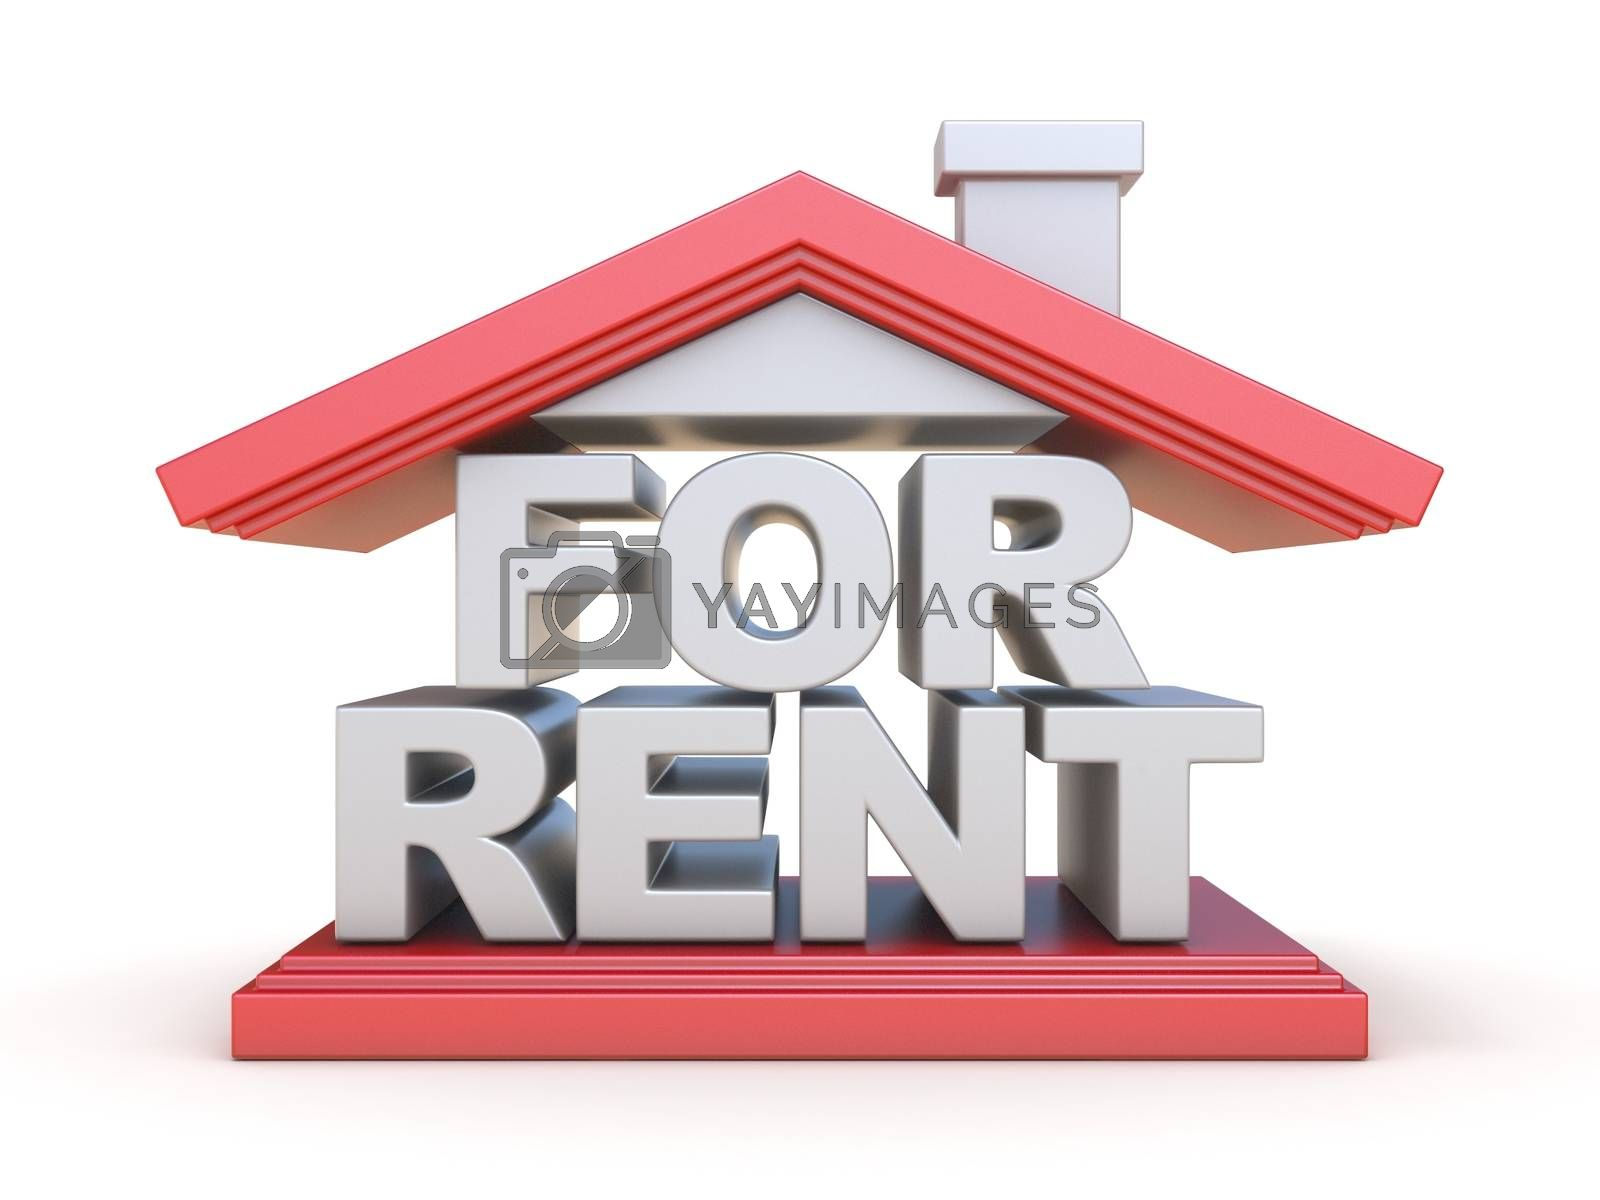 FOR RENT house sign front view 3D by djmilic